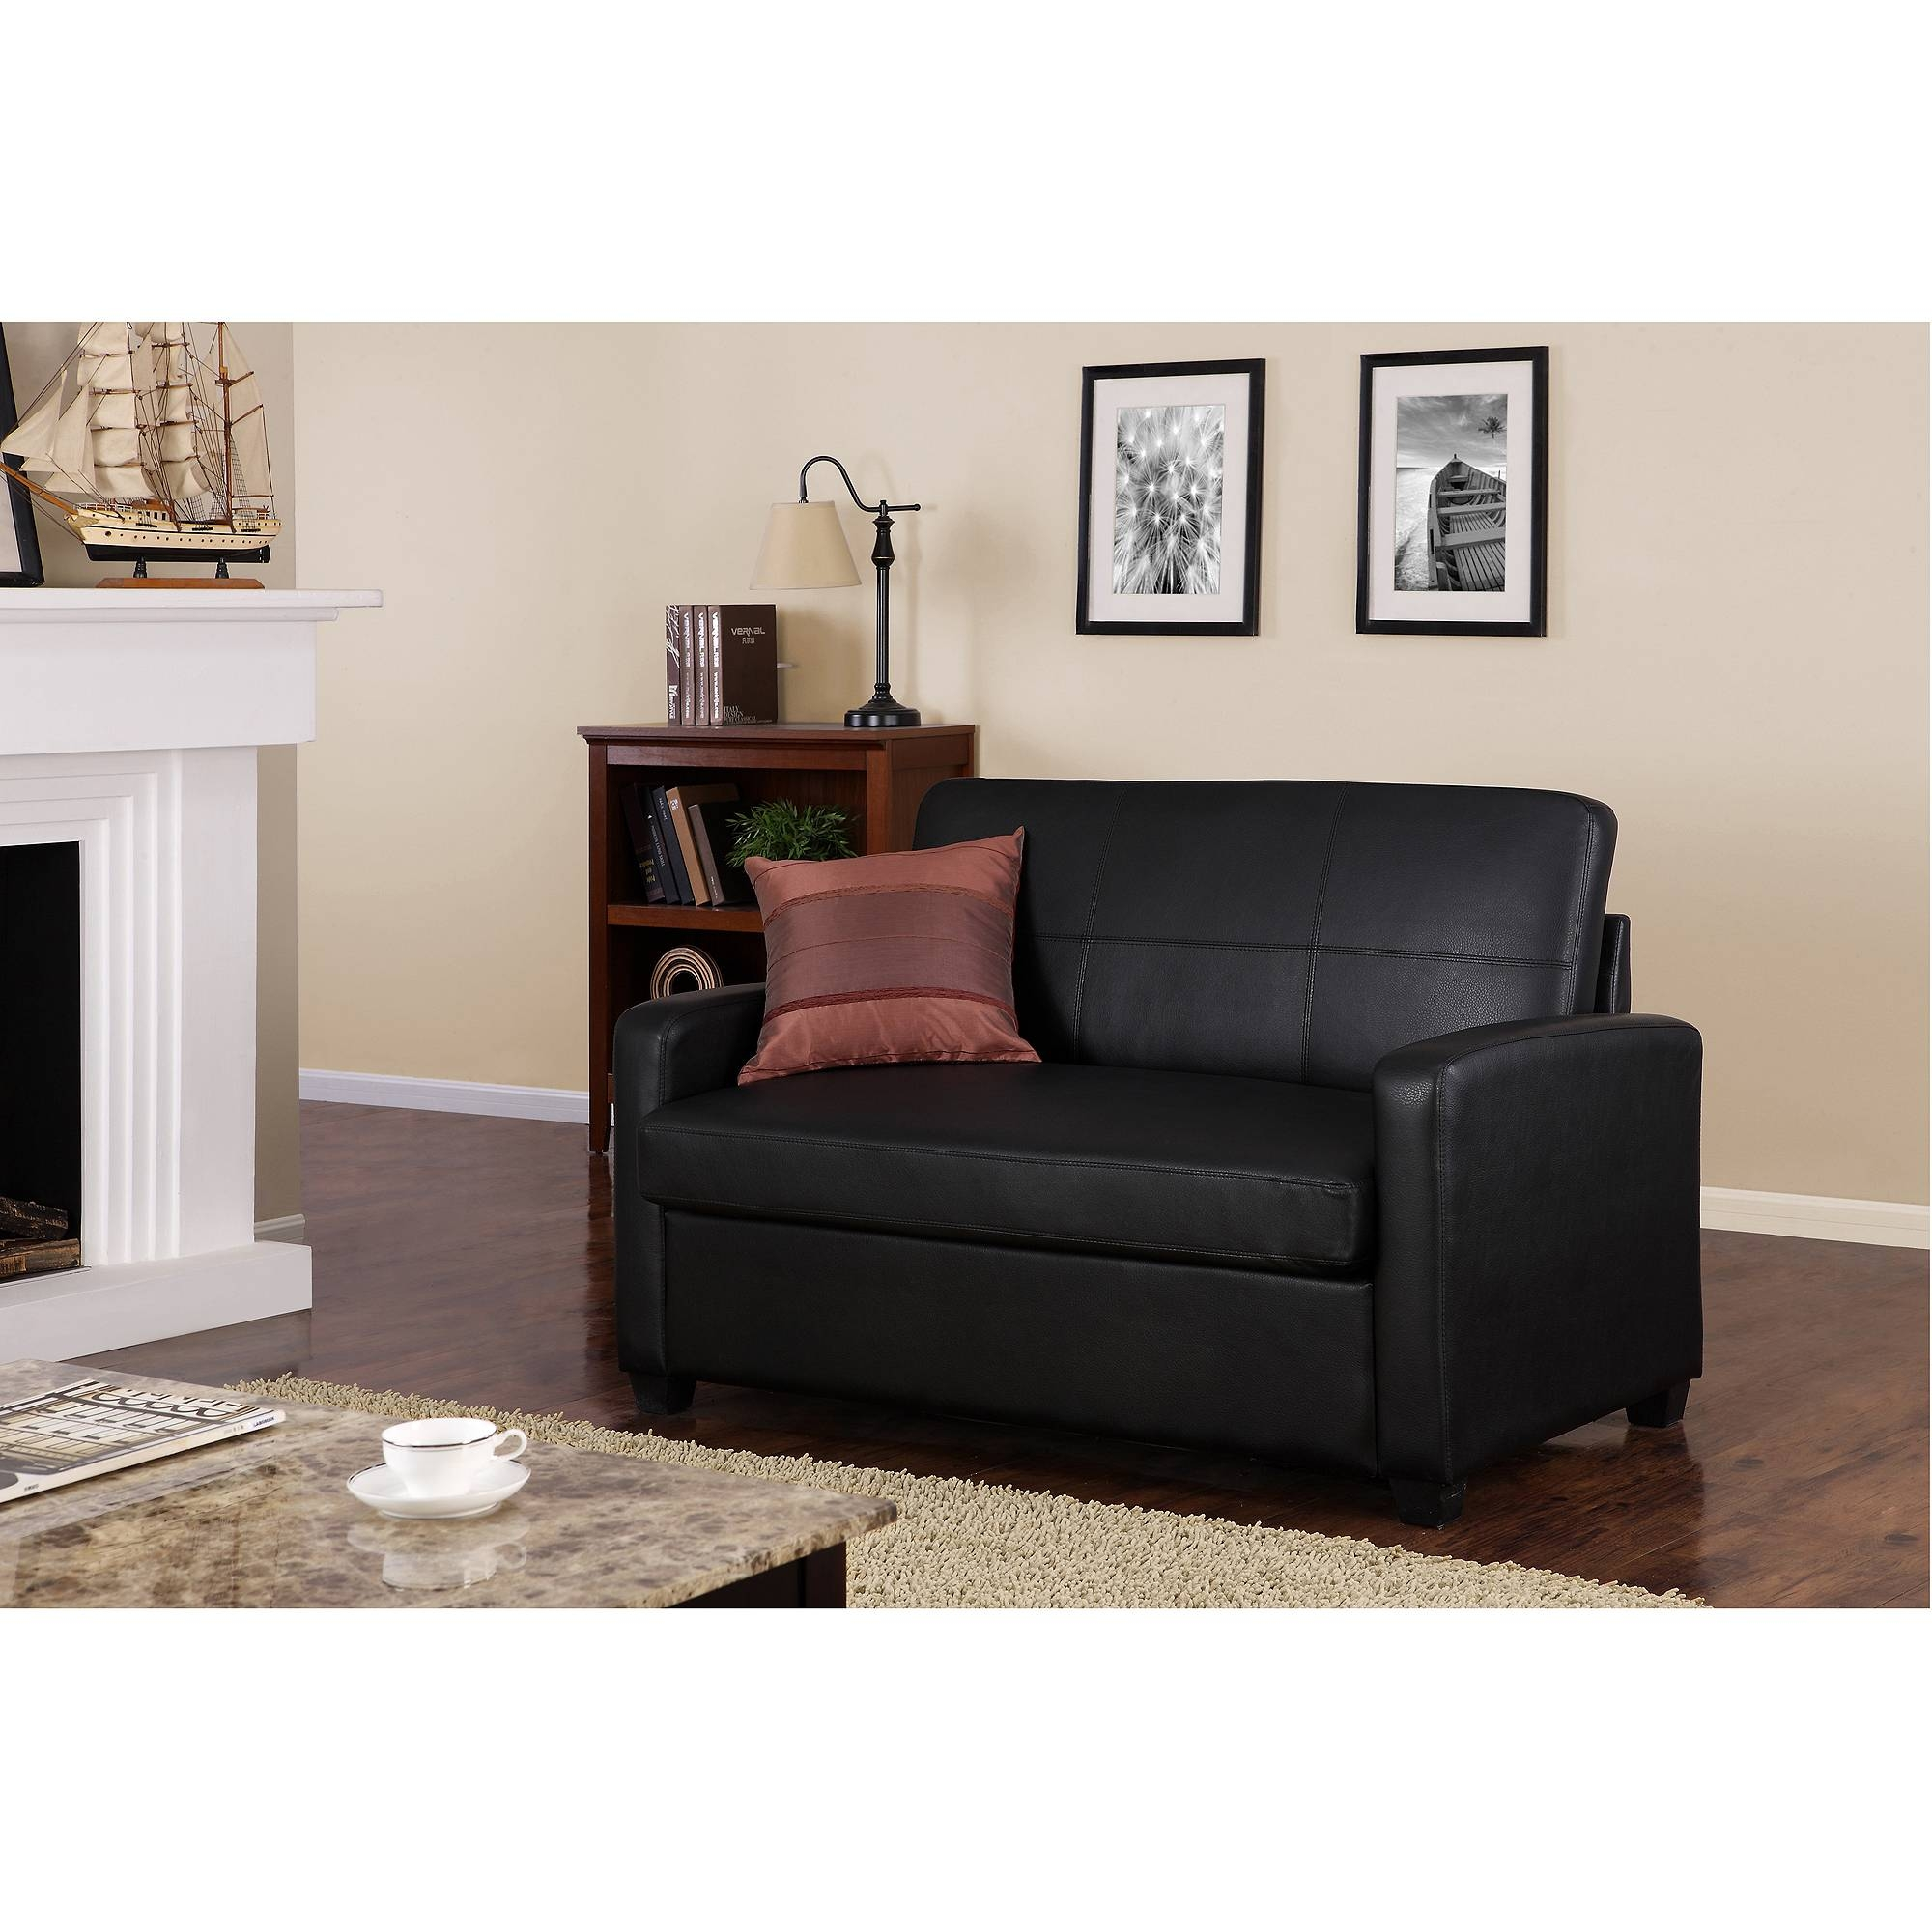 Mainstays Sofa Sleeper Brown Faux Leather | Centerfieldbar inside Mainstays Sleeper Sofas (Image 5 of 15)